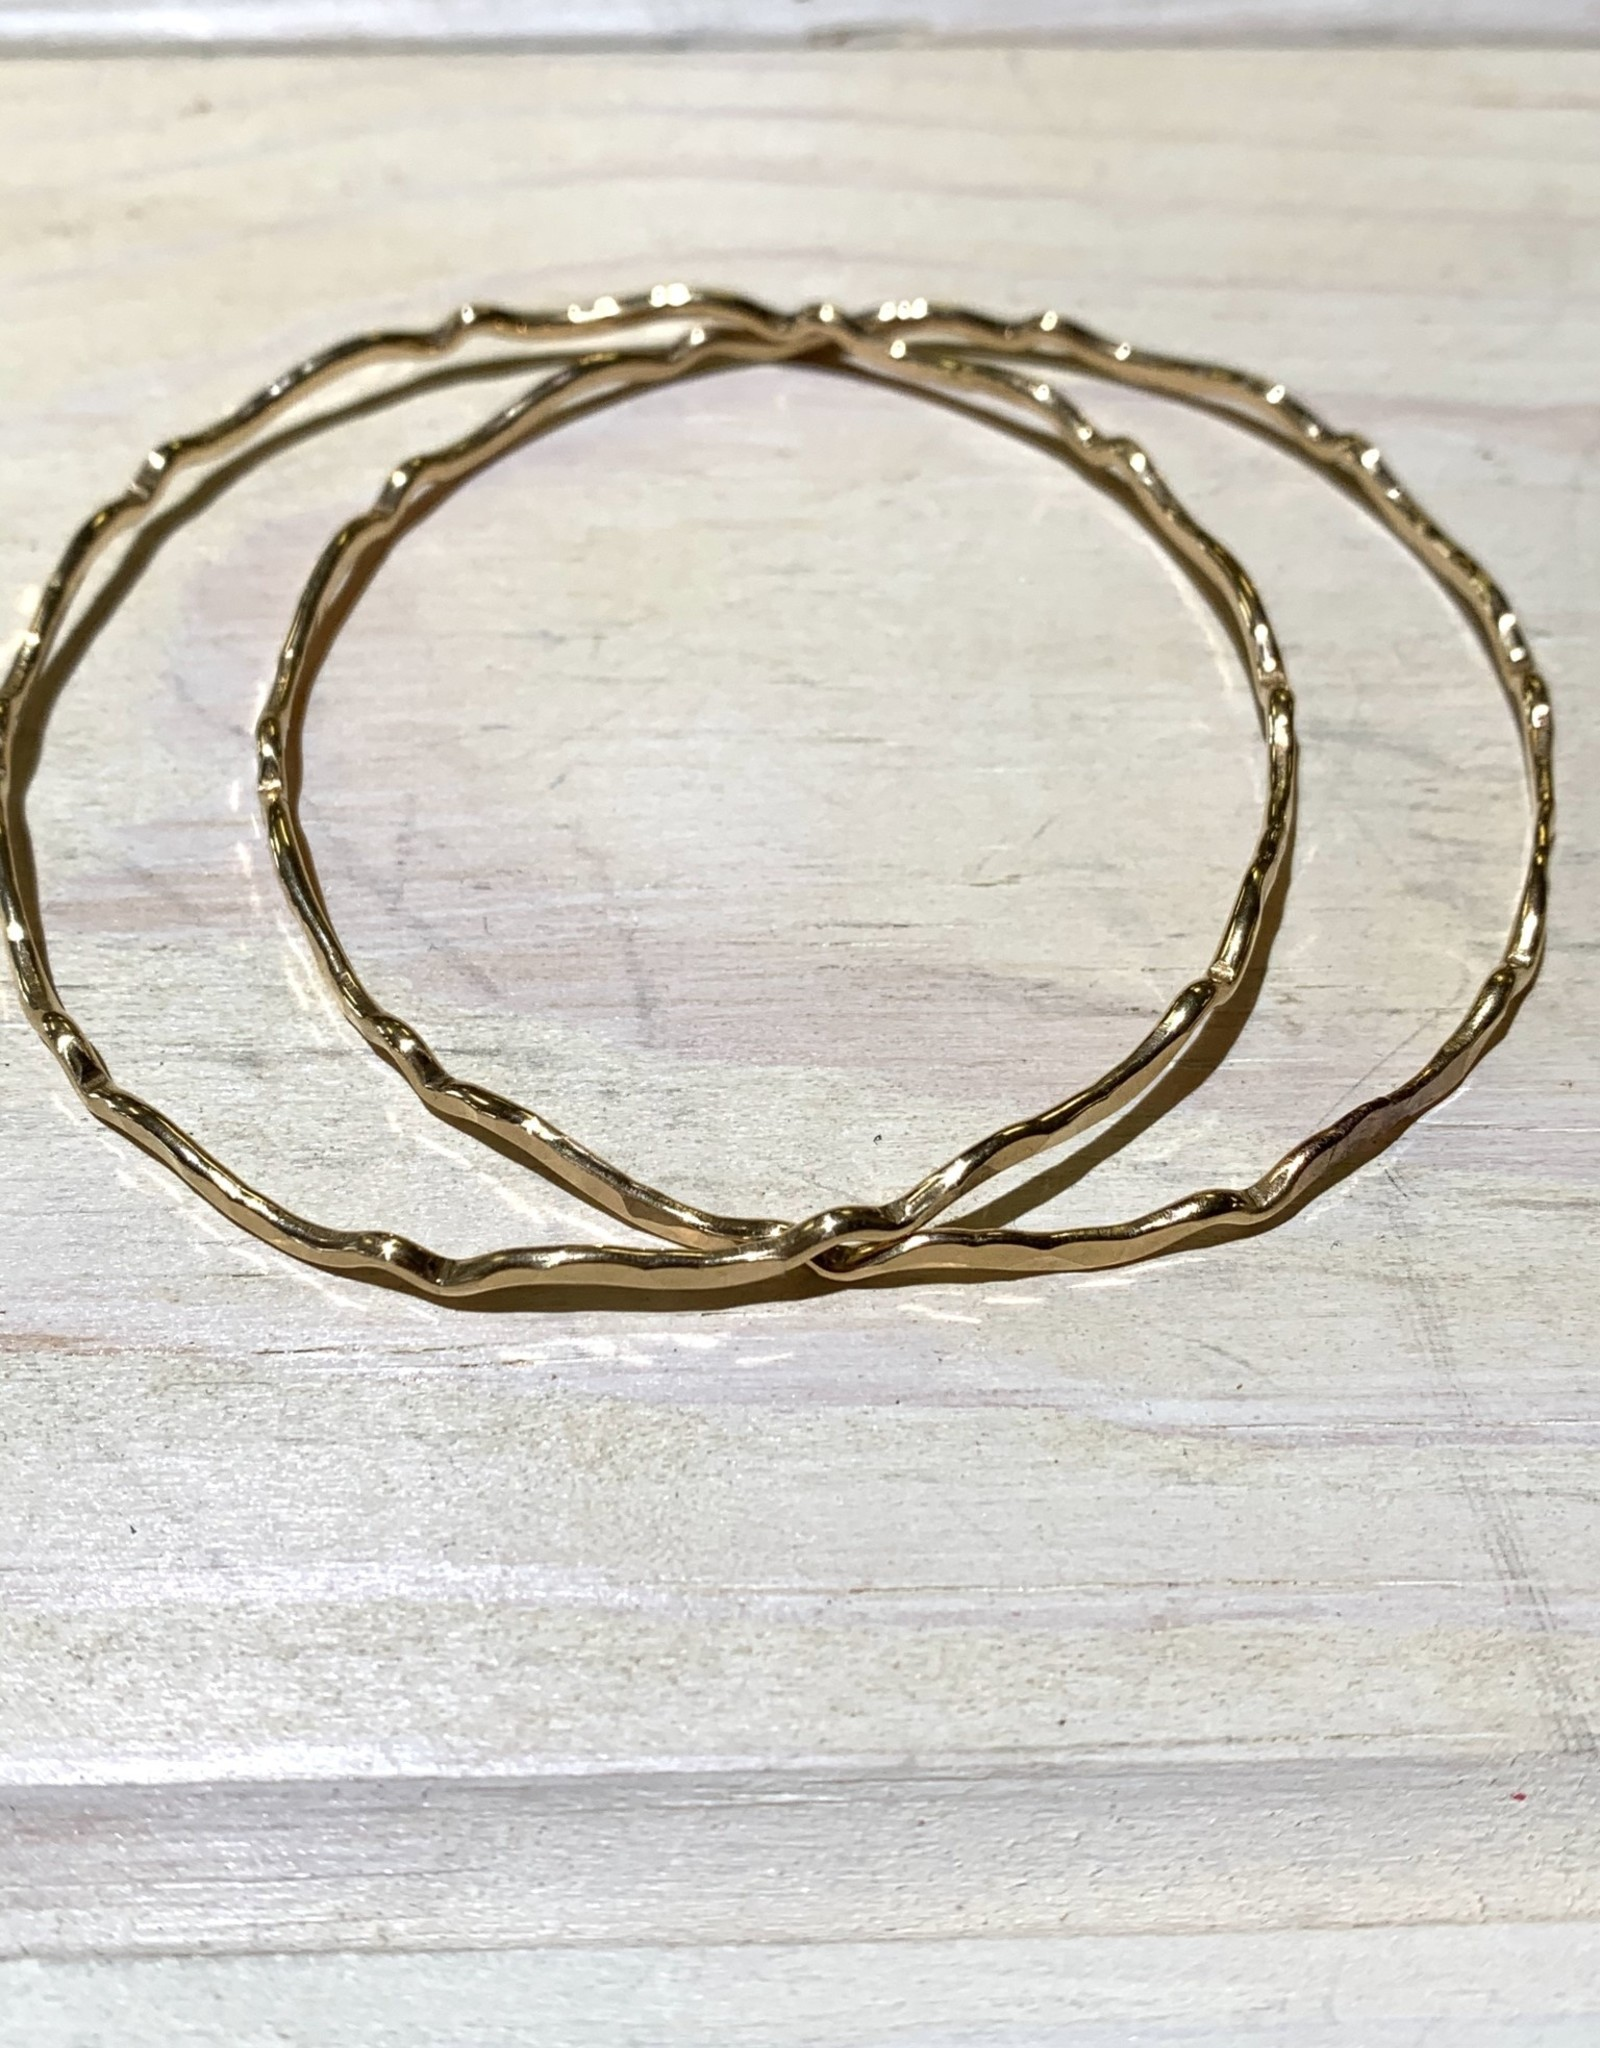 Bangle Shore Break 14ga Round Wire 14k Gold Filled ea